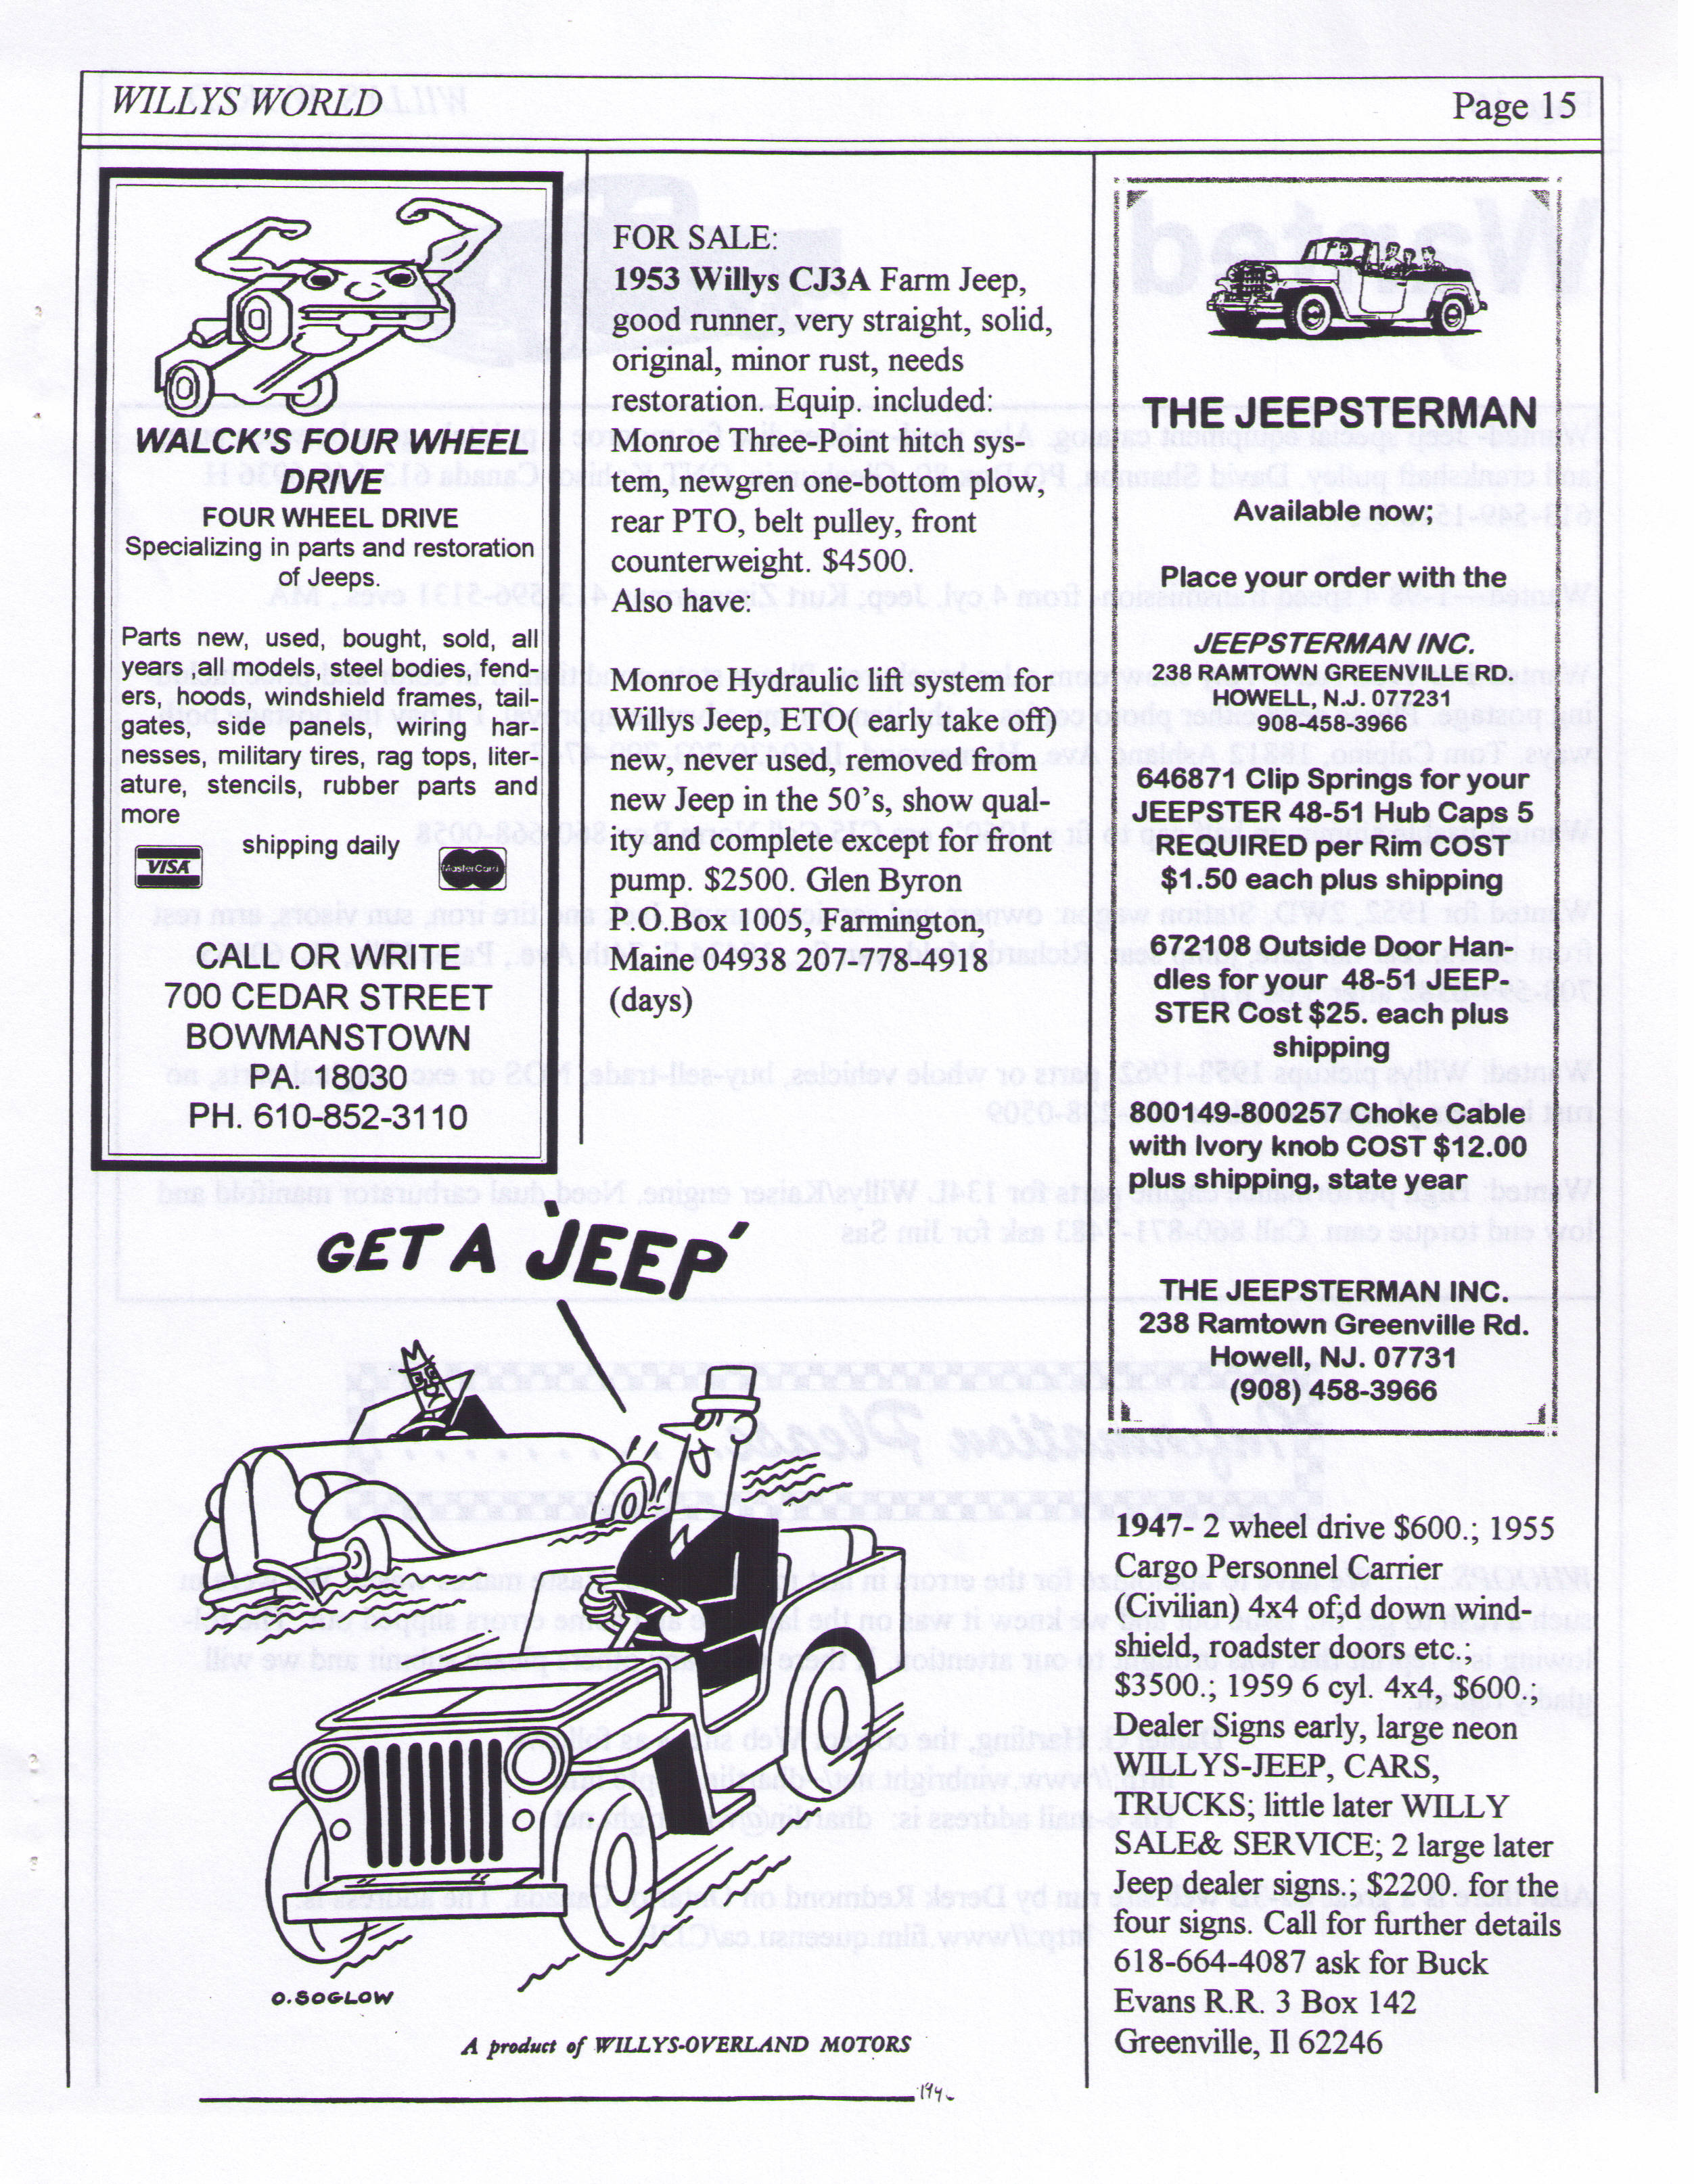 Jeep M38 Parts | Wiring Diagram Database M Amp M A Wiring Diagram on mutt wiring diagram, cj5 wiring diagram, m38 wiring diagram, truck wiring diagram, dc amp meter wiring diagram, grand wagoneer wiring diagram, m151a1 wiring diagram, tj wrangler wiring diagram, m151a2 wiring diagram, jeep wiring diagram, humvee wiring diagram, cj7 wiring diagram, m715 wiring diagram, cj3a wiring diagram, mule wiring diagram, yj wiring diagram, coleman wiring diagram, cj2a wiring diagram, m998 wiring diagram, 4x4 wiring diagram,